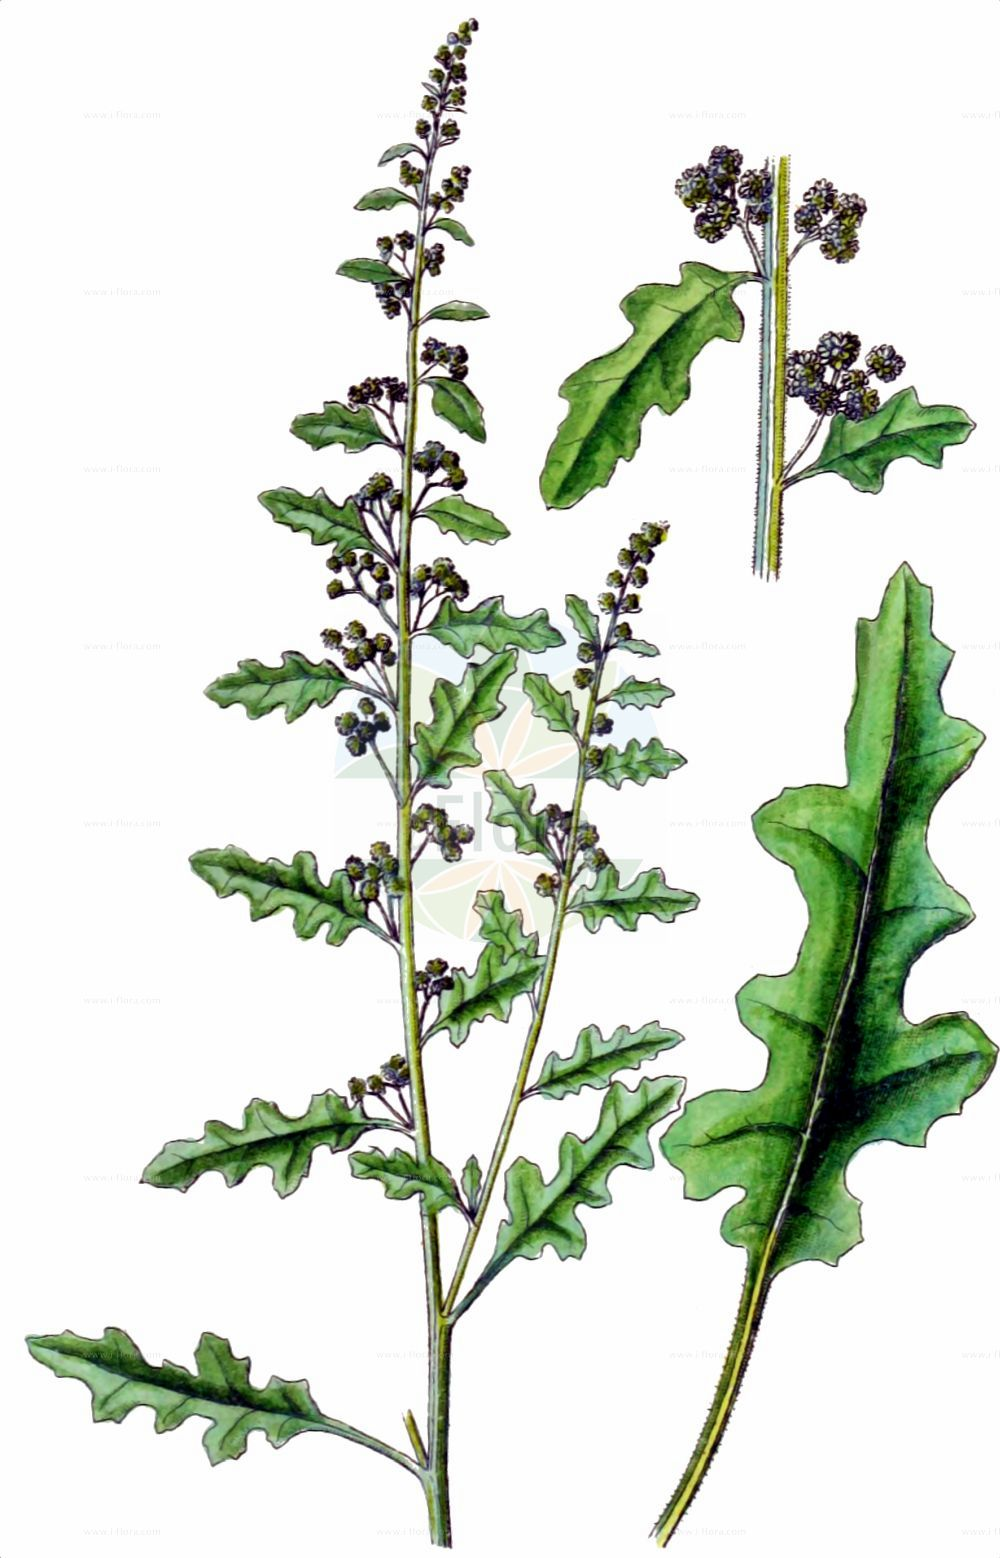 Historische Abbildung von Dysphania botrys (Klebriger Druesengaensefuss - Sticky Goosefoot). Das Bild zeigt Blatt, Bluete, Frucht und Same. ---- Historical Drawing of Dysphania botrys (Klebriger Druesengaensefuss - Sticky Goosefoot).The image is showing leaf, flower, fruit and seed.(Dysphania botrys,Klebriger Druesengaensefuss,Sticky Goosefoot,Chenopodium botrys,Dysphania botrys,Klebriger Druesengaensefuss,Druesen-Gaensefuss,Klebriger Gaensefuss,Sticky Goosefoot,Jerusalem-oak Goosefoot,Dysphania,Druesengaensefuss,Goosefoot,Amaranthaceae,Fuchsschwanzgewaechse,Pigweed family,Blatt,Bluete,Frucht,Same,leaf,flower,fruit,seed,Sturm (1796f))